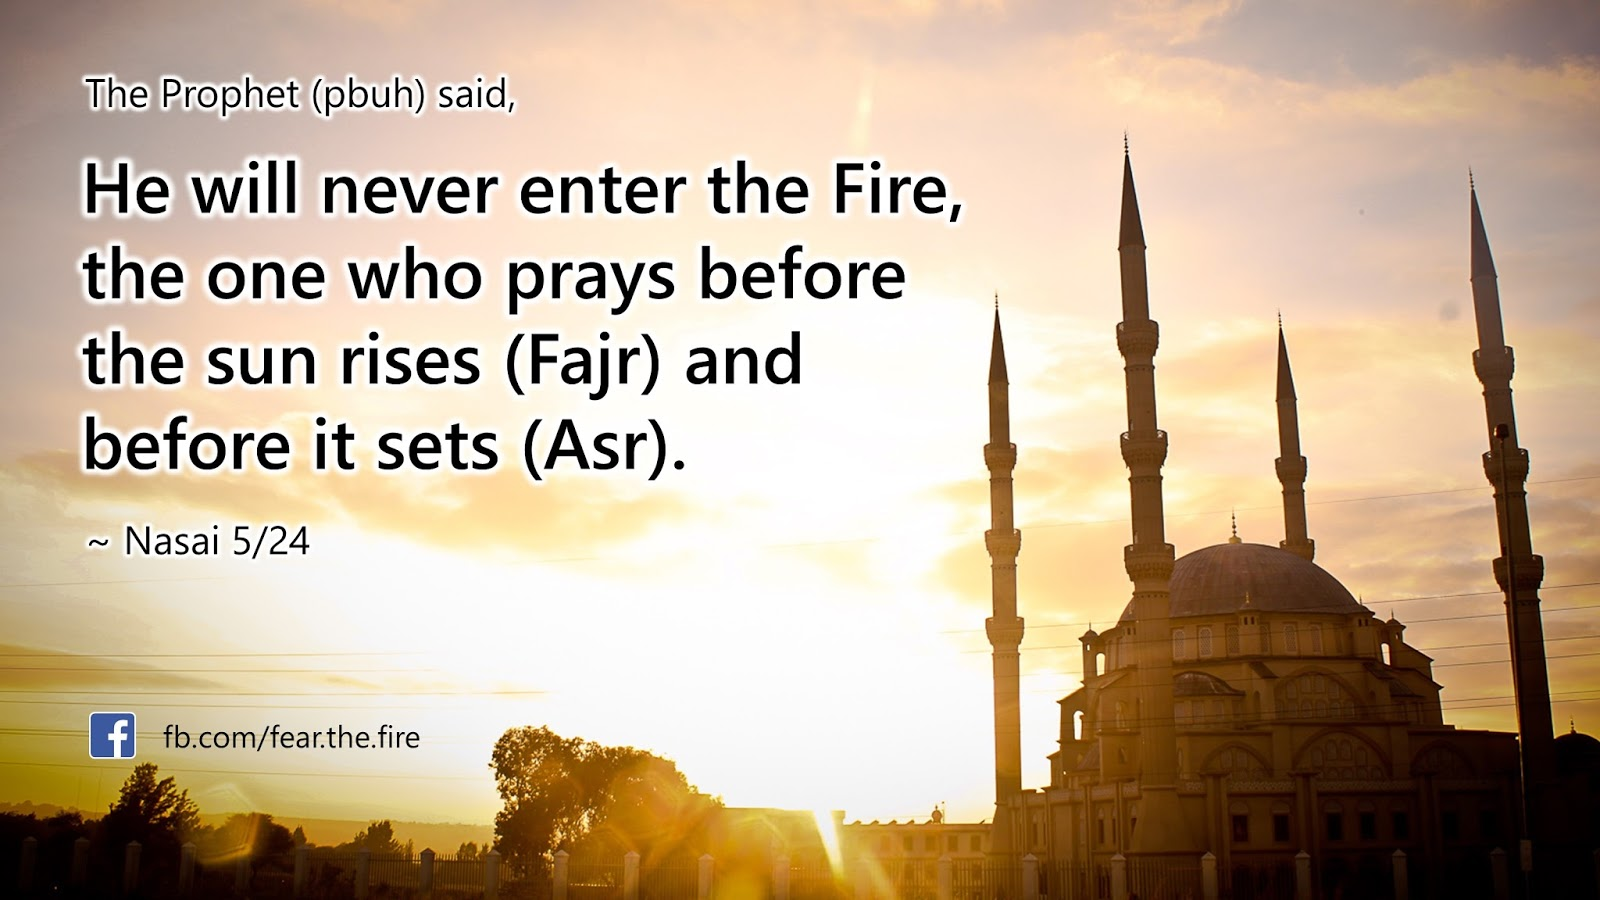 Indeed Prayer Prohibits Immorality and Wrongdoing - Inch